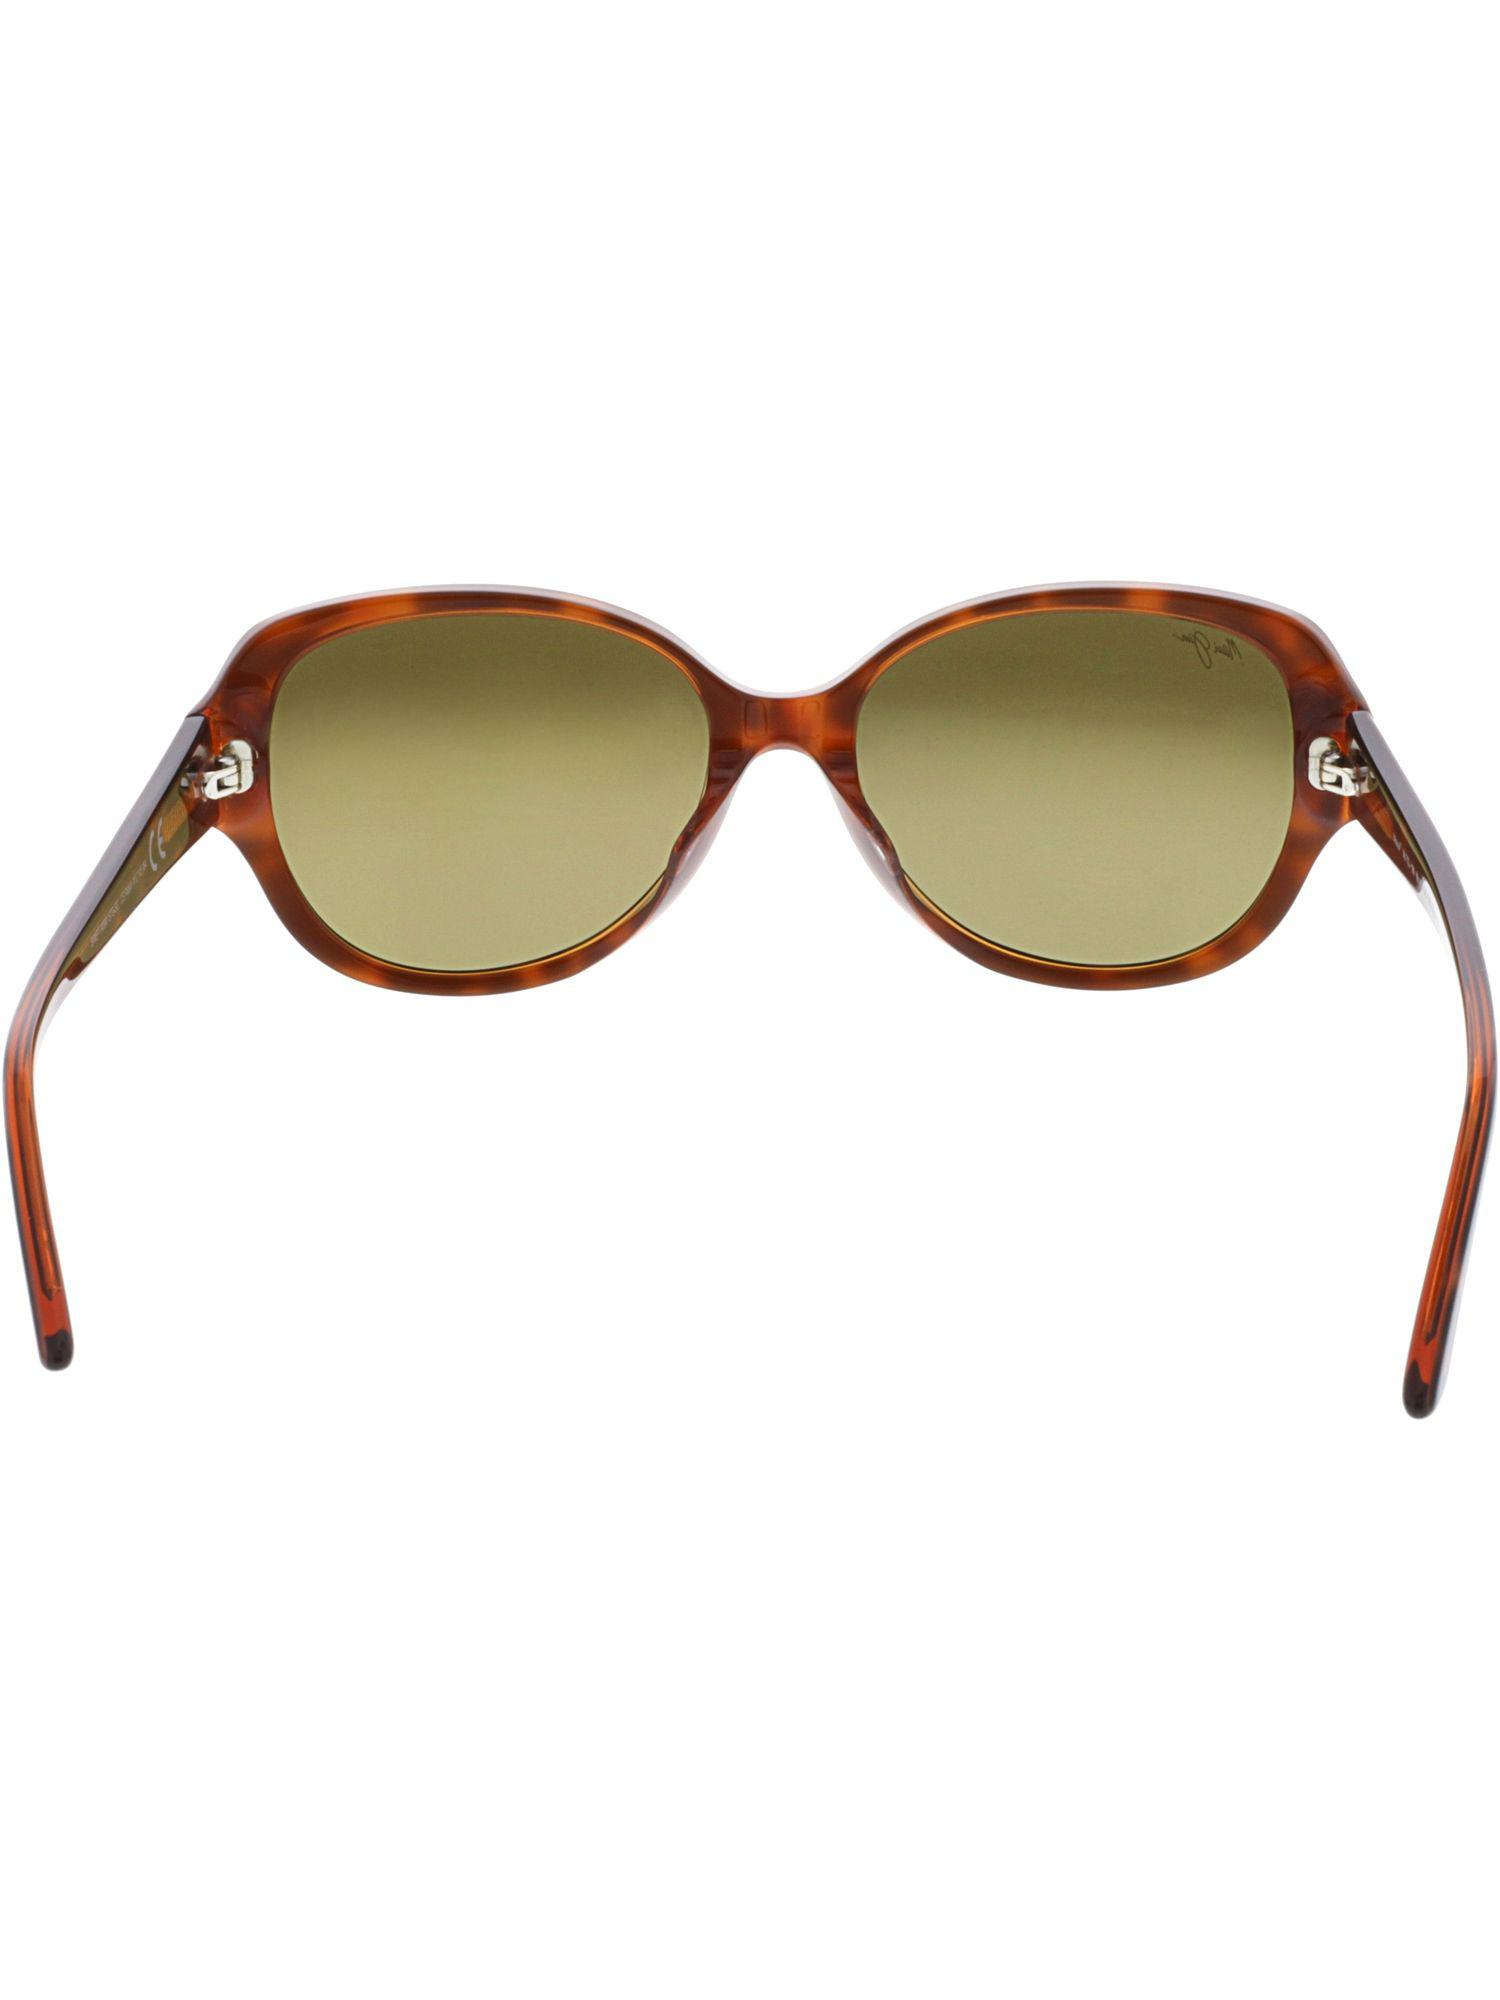 aed2b38895eda Maui Jim - Women s Polarized Swept Away Hs733-10n Brown Butterfly Sunglasses  - Lyst. View fullscreen